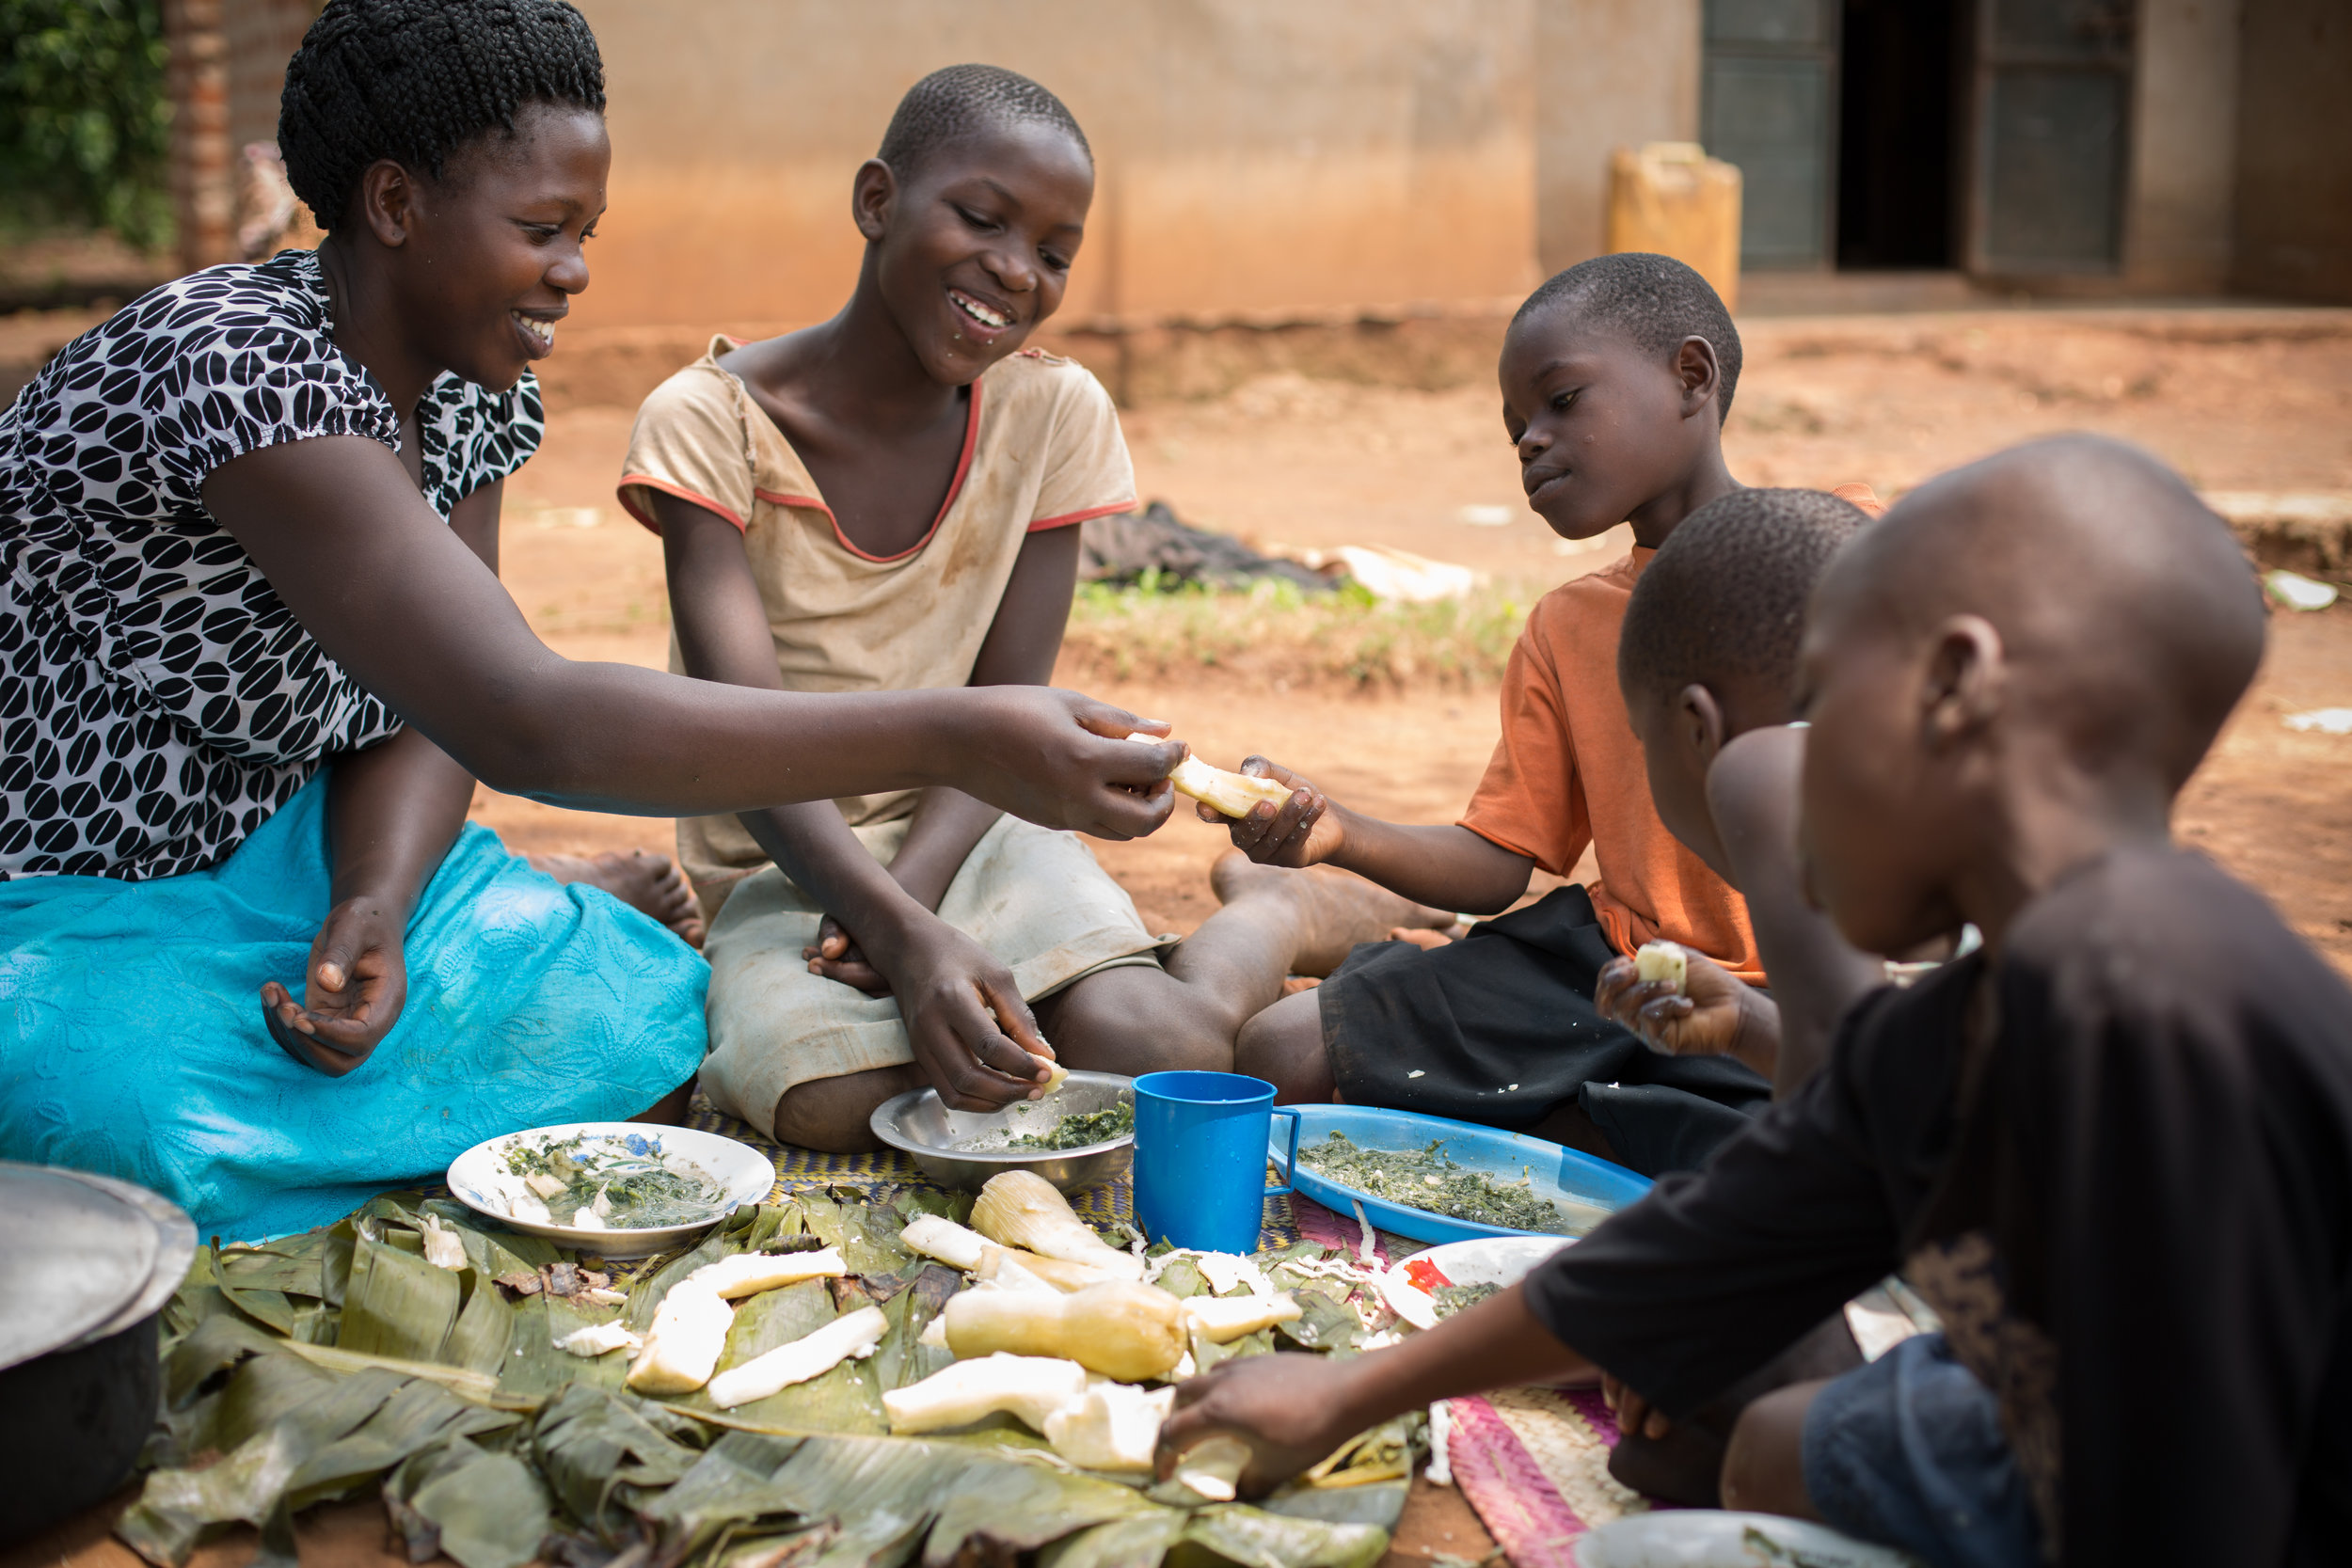 PROTECTIVE SYSTEMS CASE STUDY:  Building a system of care for children in Uganda   (Digital Version)